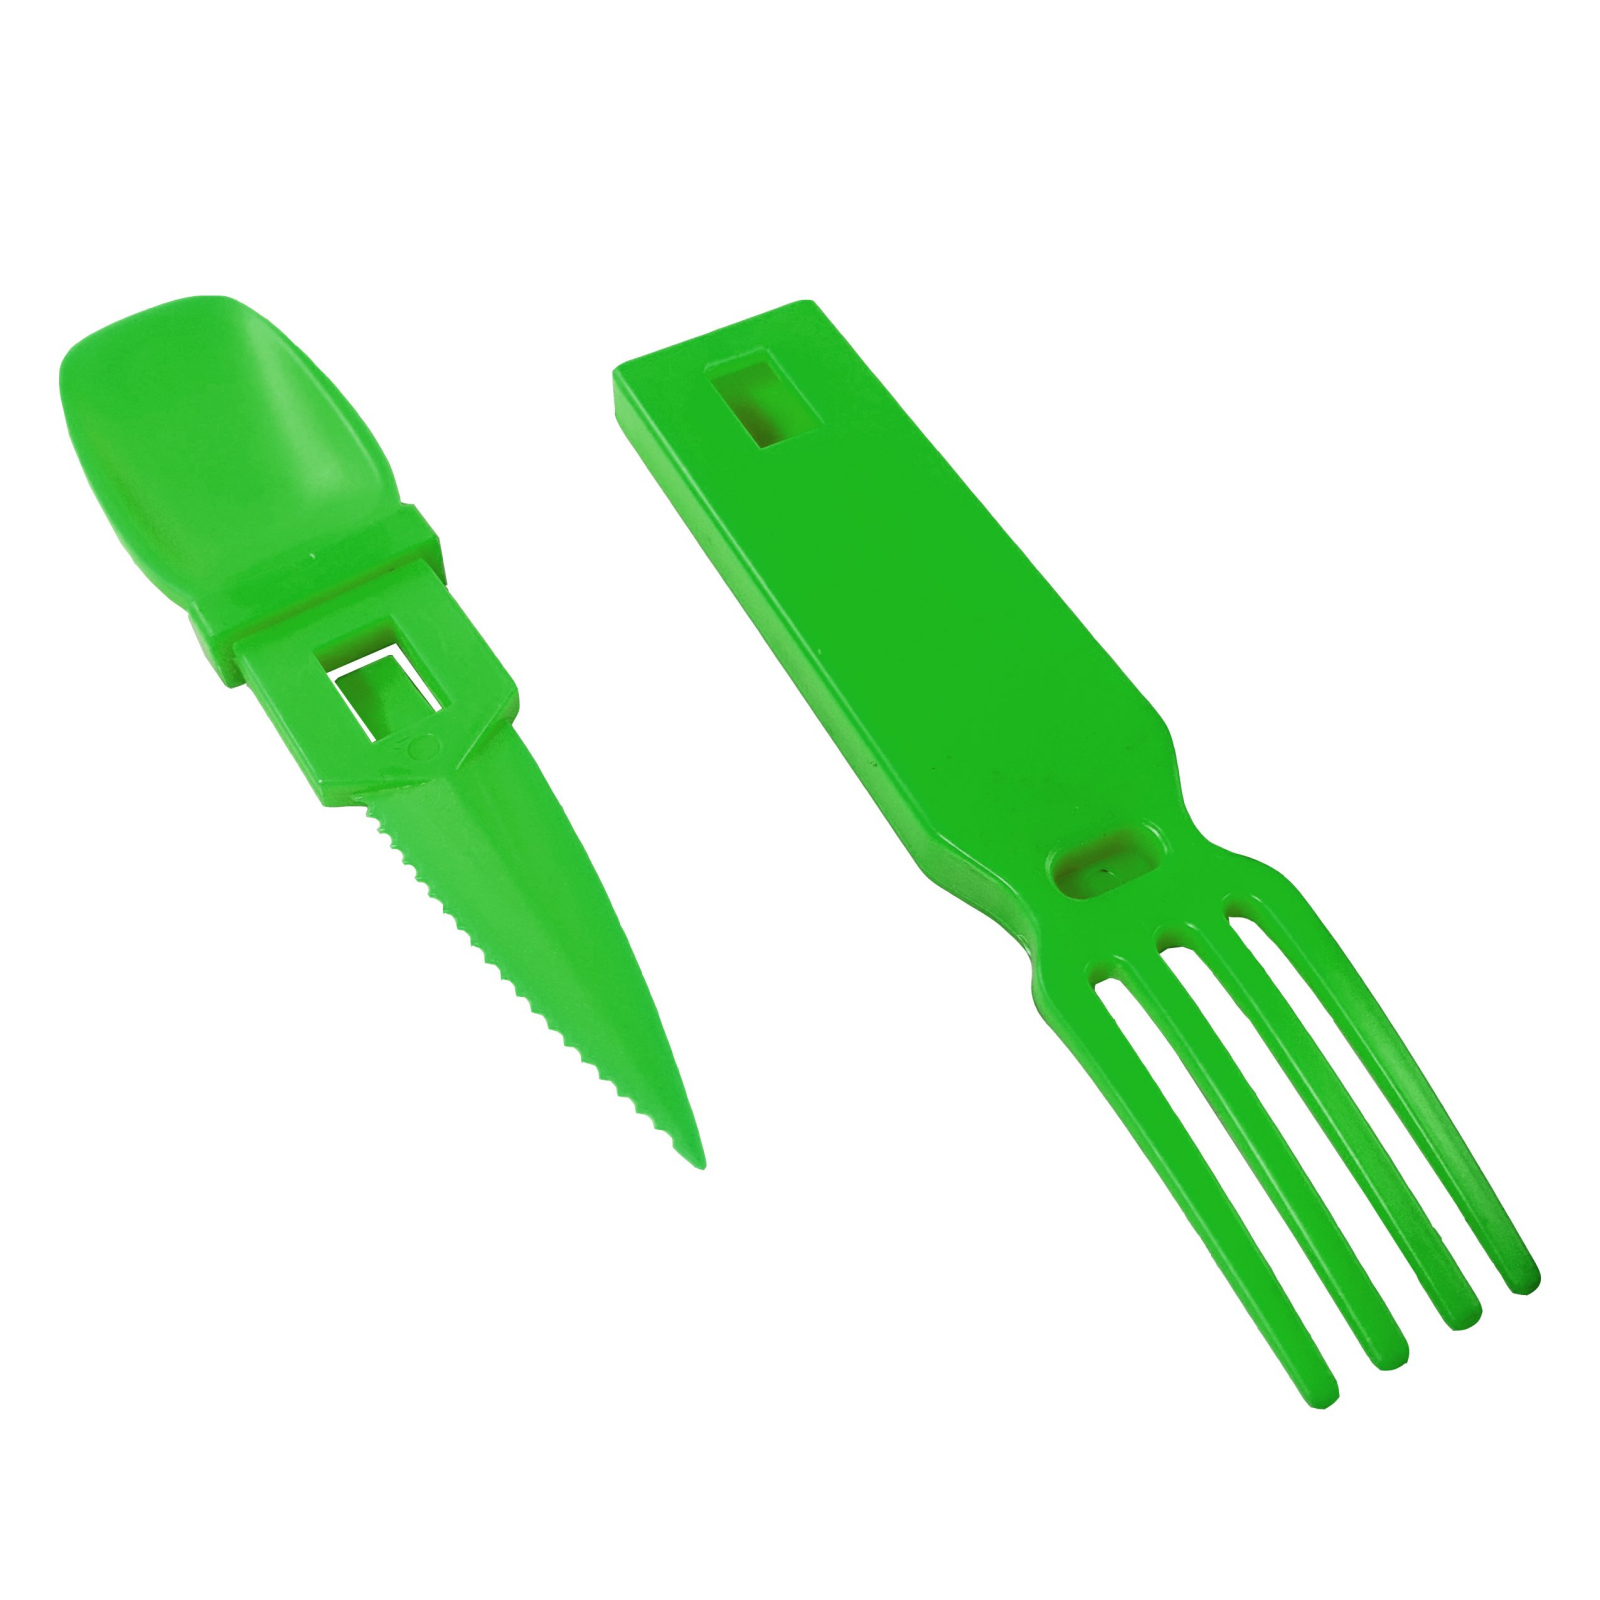 ASR Outdoor Snapatite 3 in 1 Utensil Camping Tool - Green